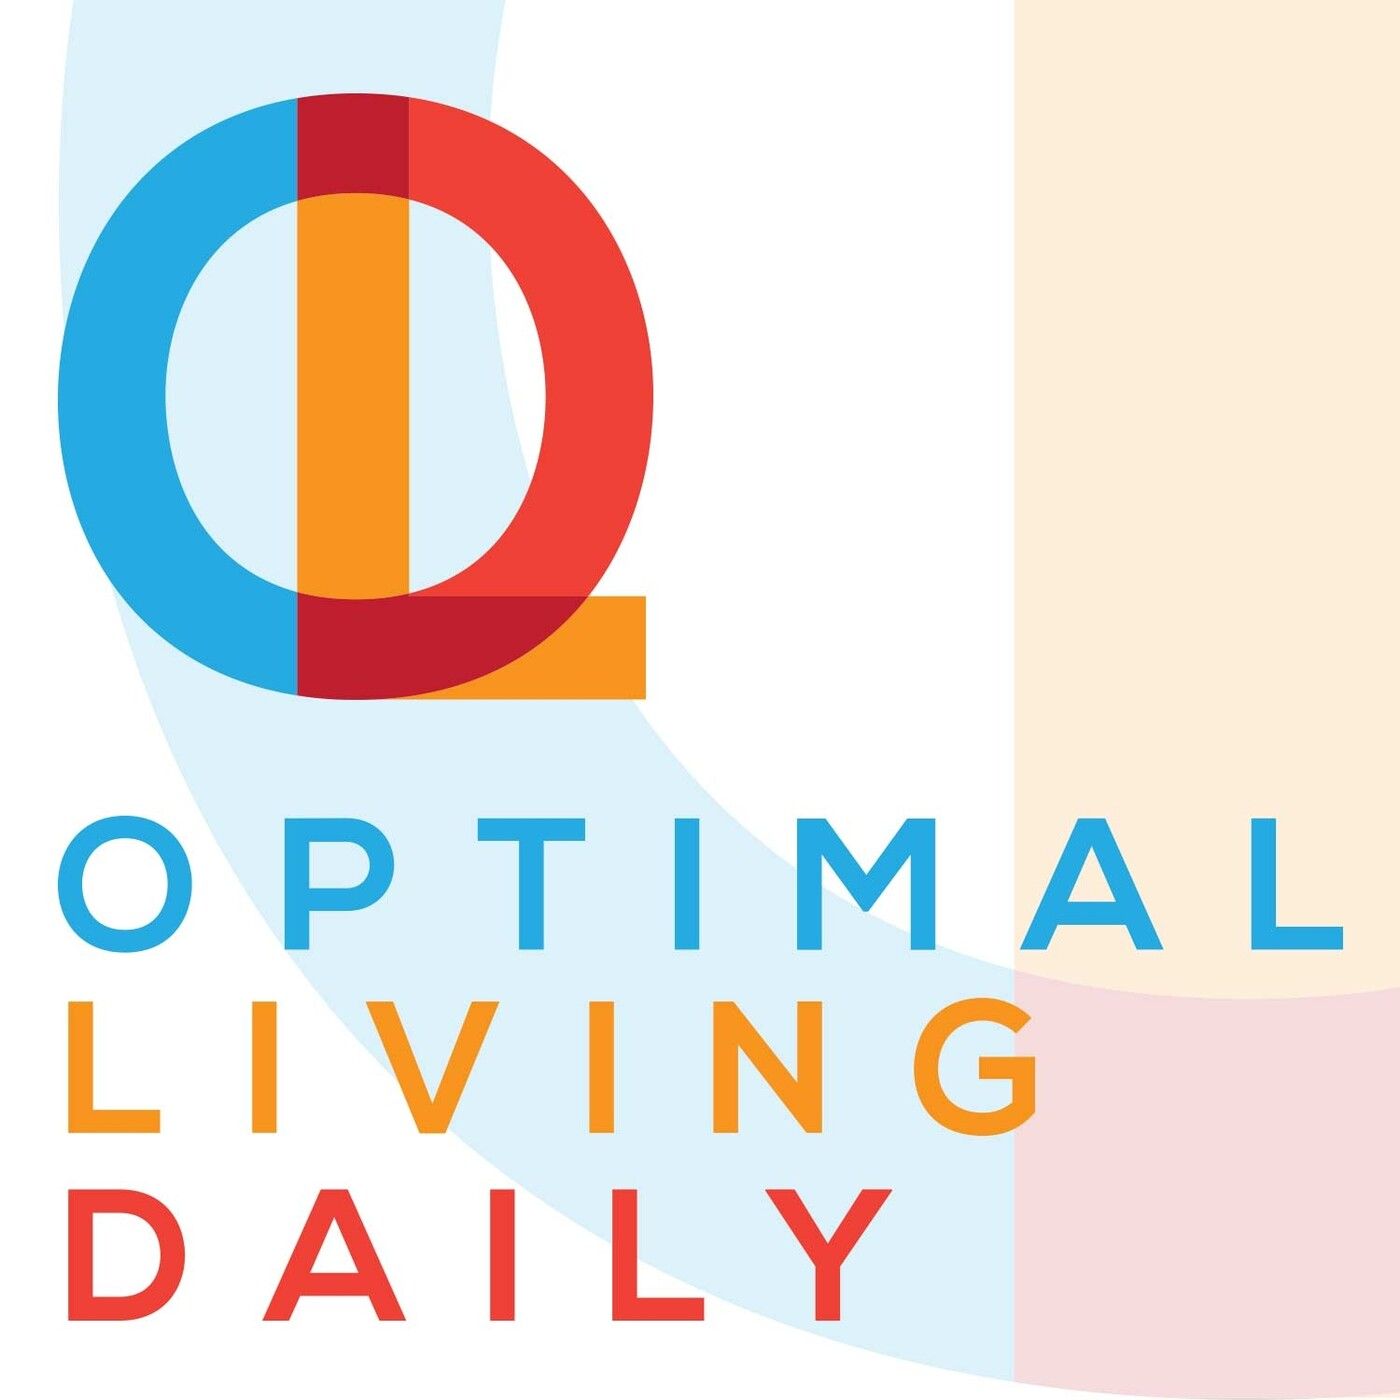 Optimal Living Daily: Personal Development | Produ